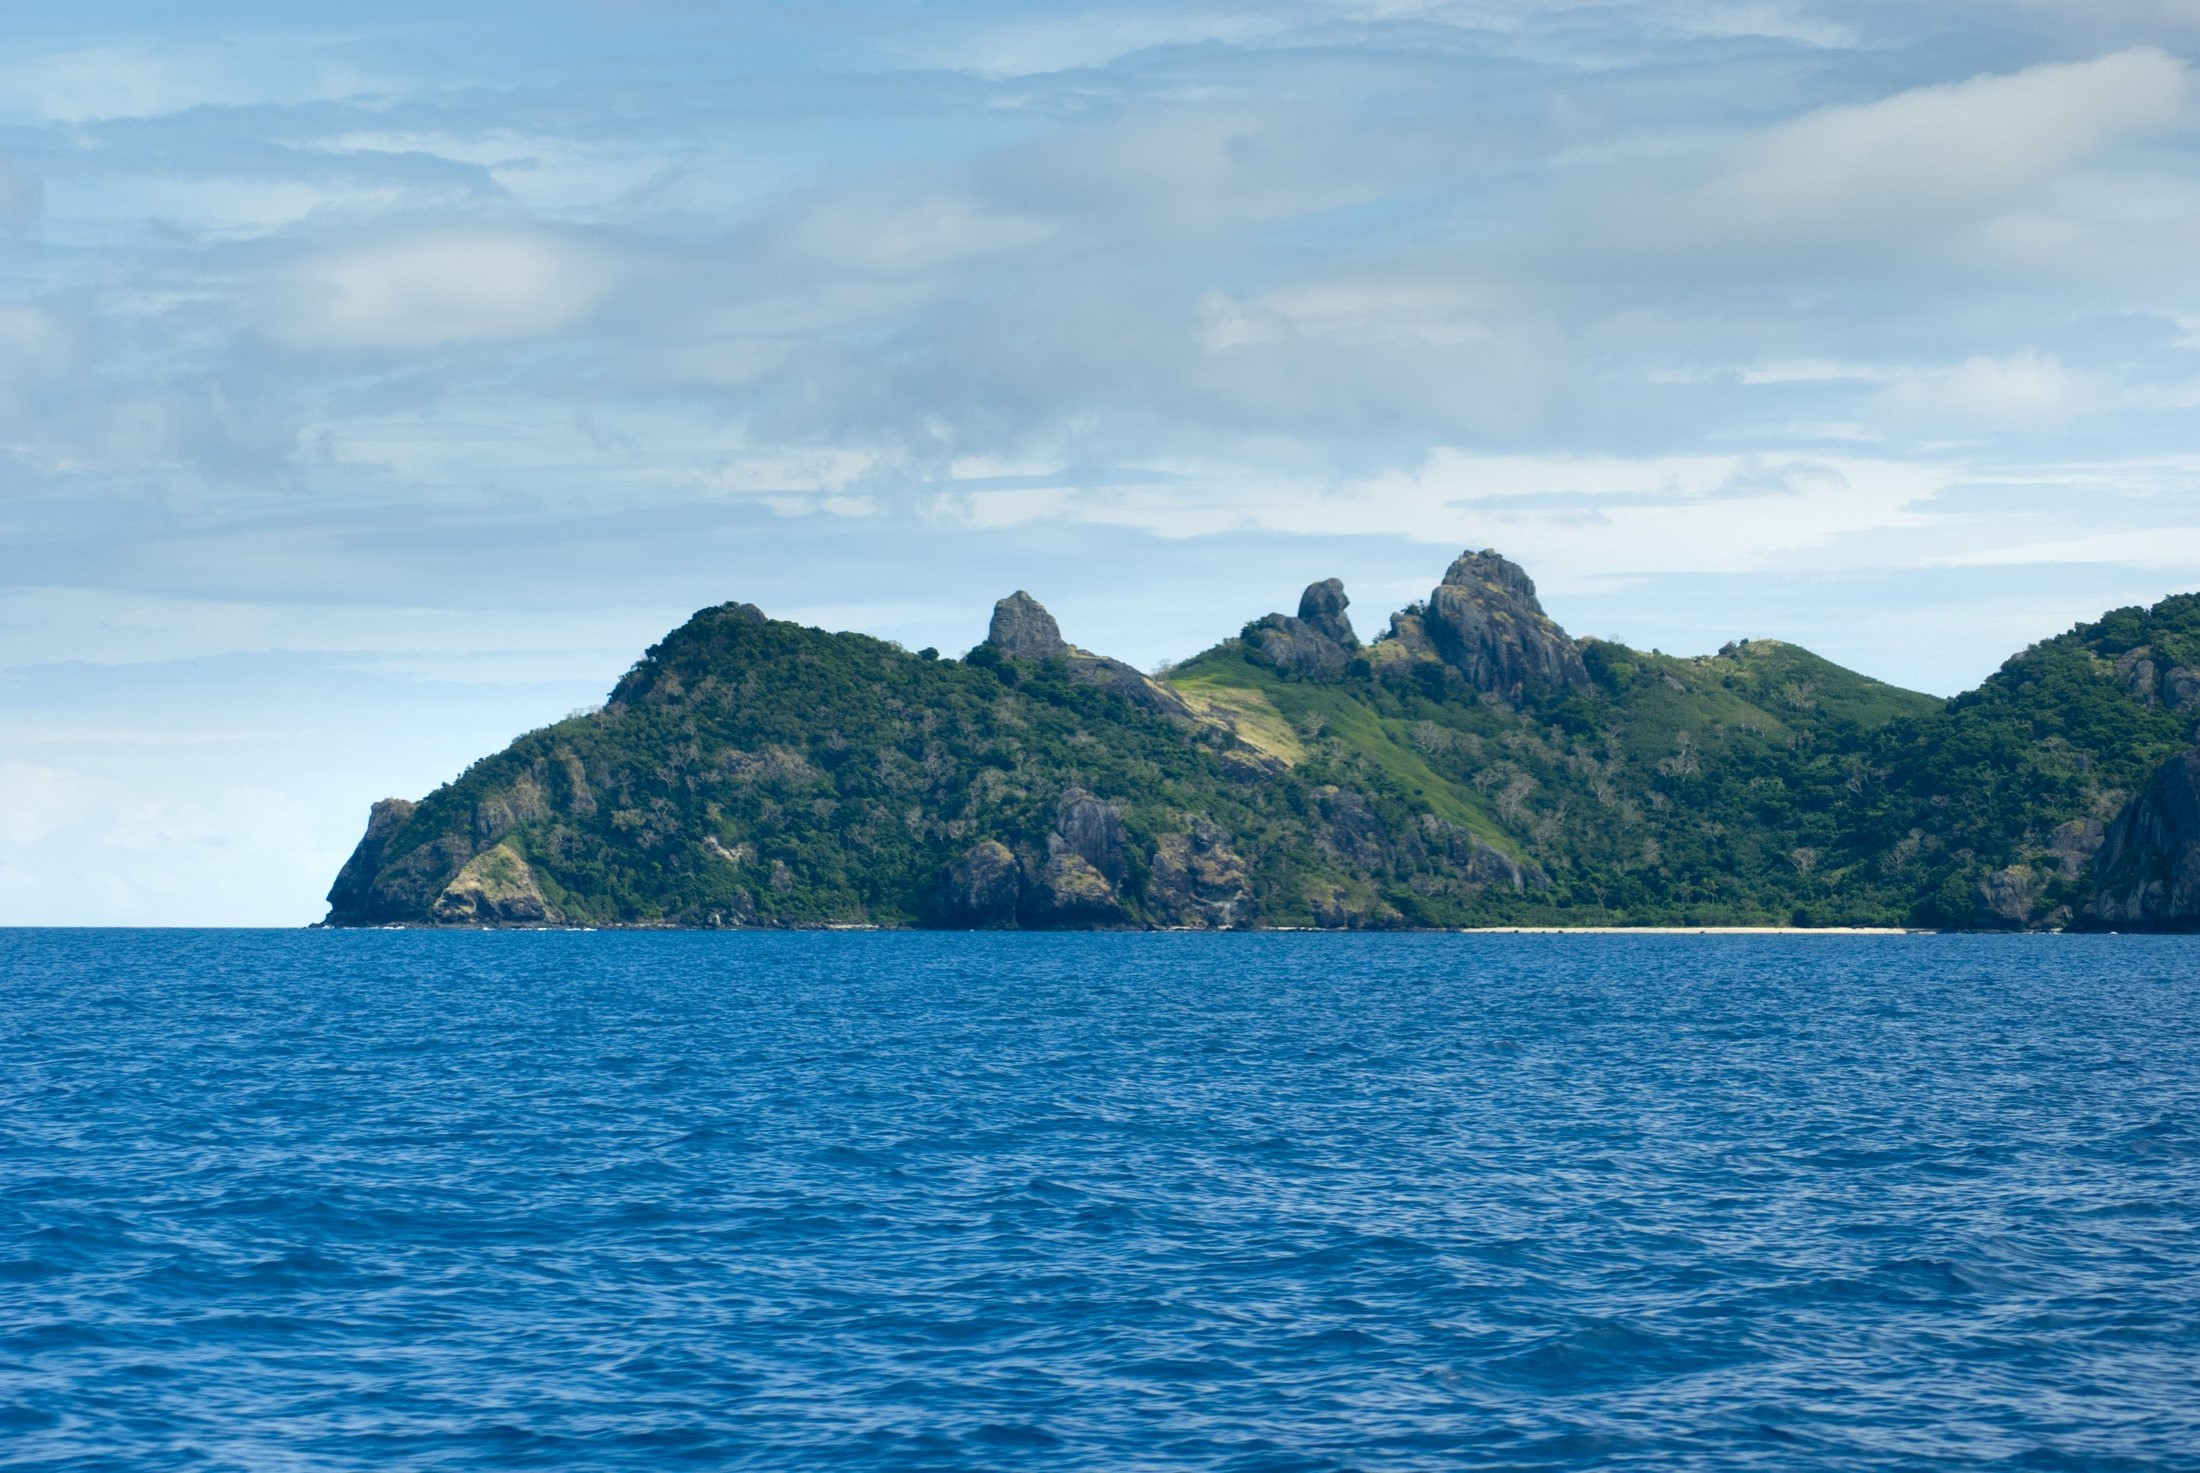 View across open blue ocean while cruising offshore of Yasawa Islands Fiji showing the rocky topography of these beautiful tropical islands